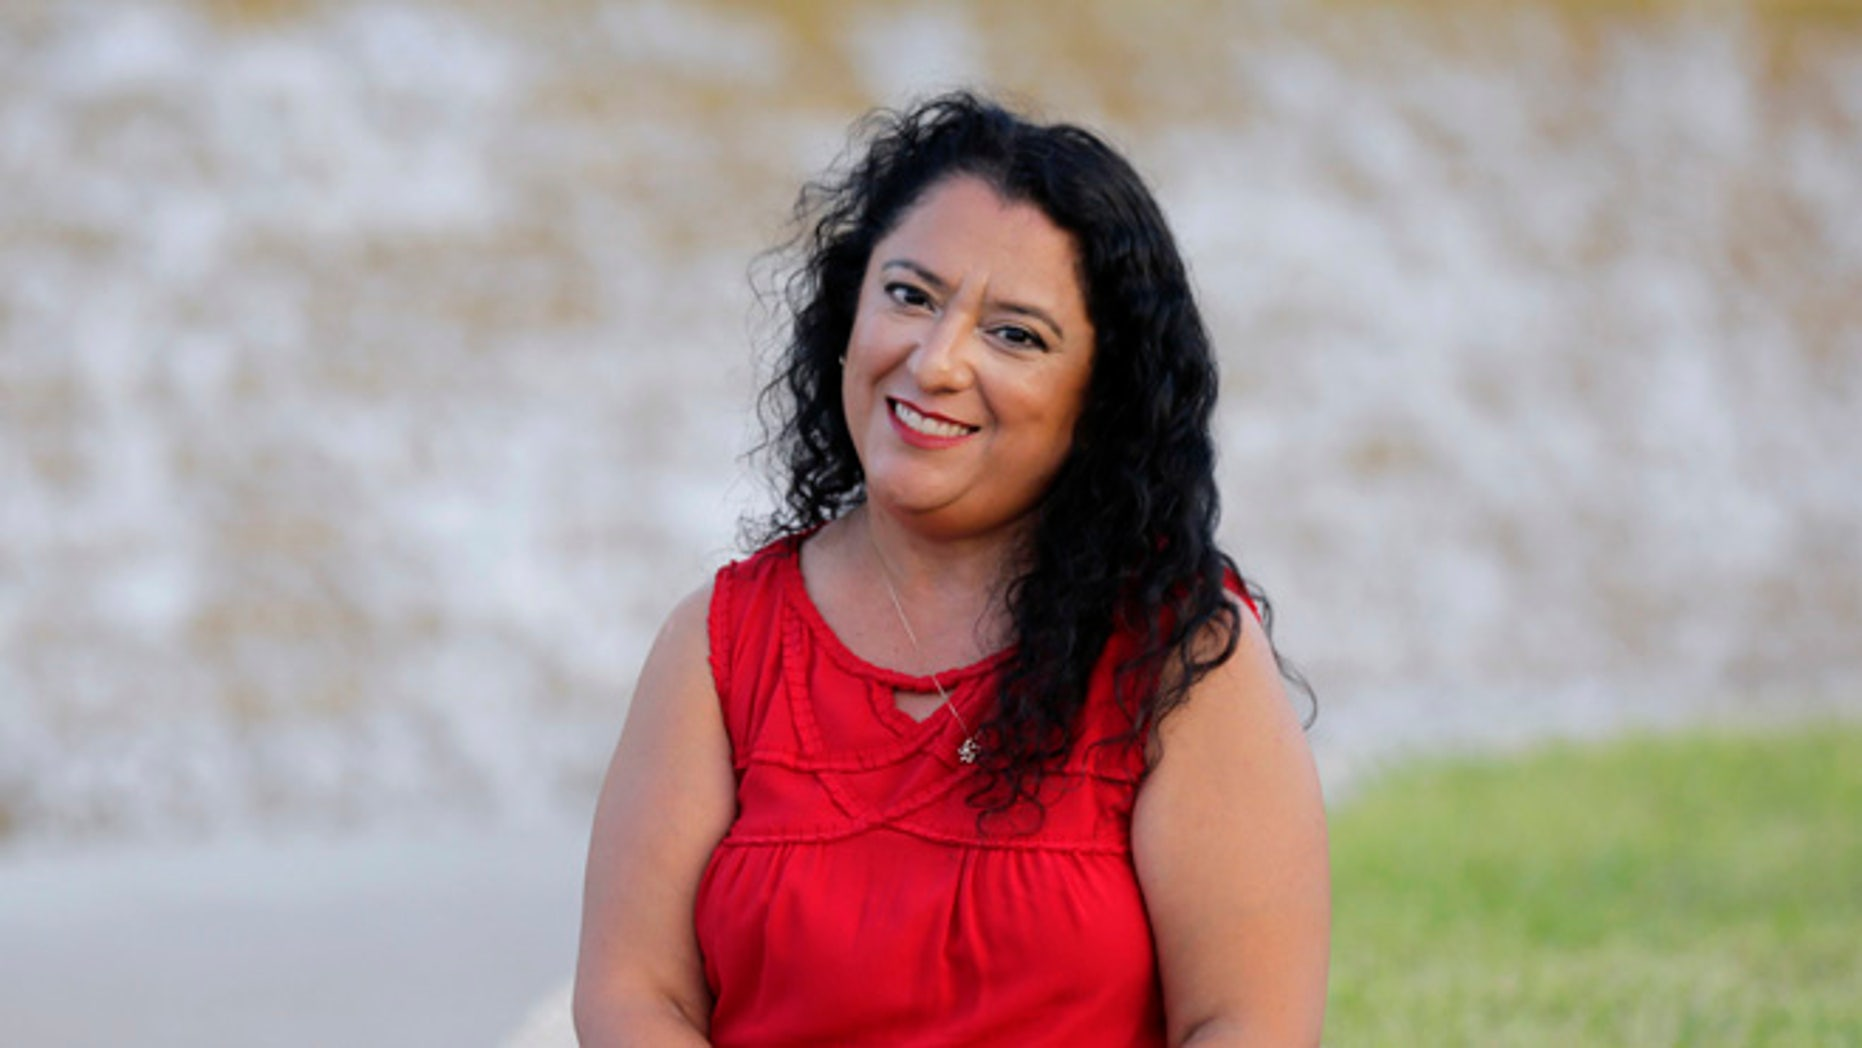 """Rebecca Esparza, a two-time cancer survivor, poses for photos at the Watergardens in Corpus Christi, Texas on Thursday, July 14, 2016. She says repealing the federal Affordable Care Act, as Republicans have tried to do dozens of times in Congress, could make her uninsurable. """"I realize this is something that could happen... It's a terrifying thought for me not to have any insurance at all."""" (AP Photo/Eric Gay)"""